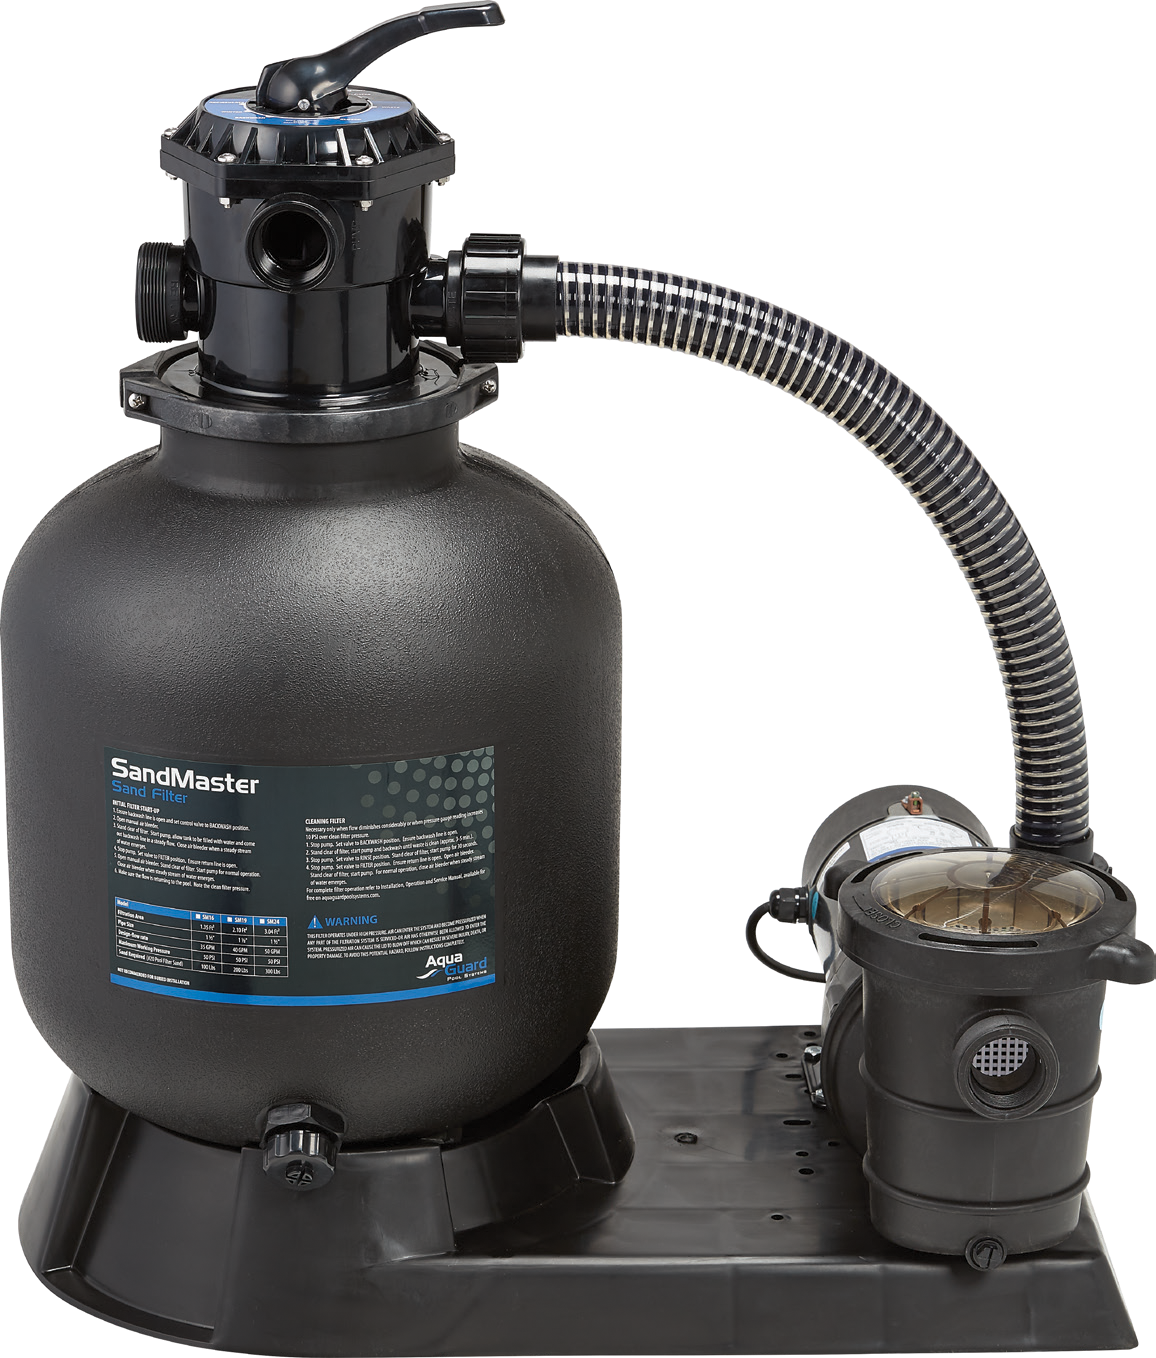 Sandmaster Filter System Aquaguard Pool Products Installation Diagram Best Pumps And Filters Our Complete Line Of Systems Deliver The Industrys Filtration To Clean Your